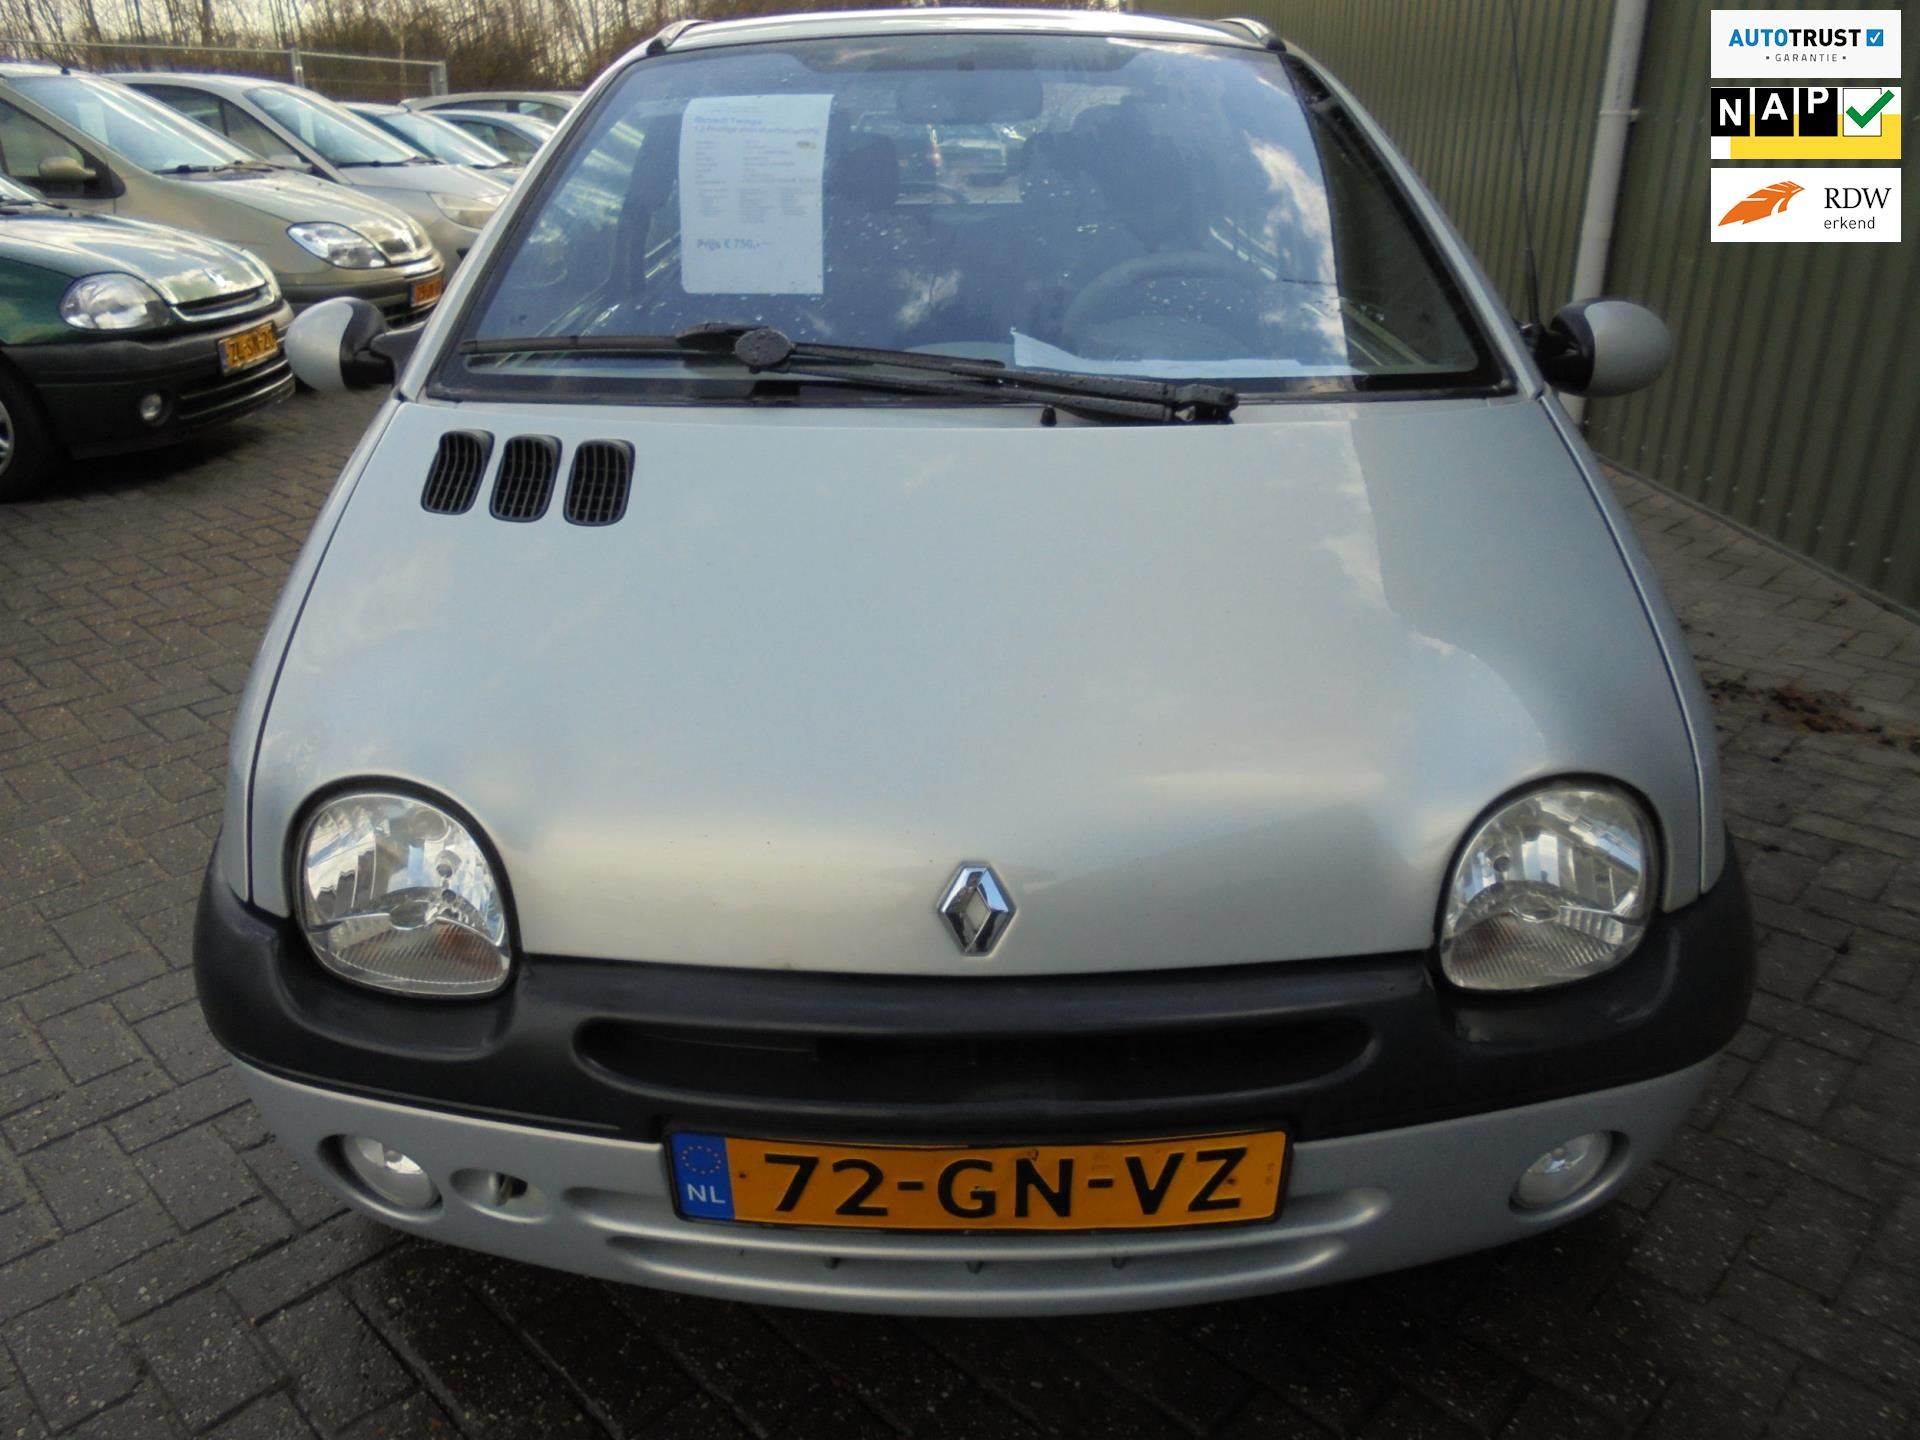 Renault Twingo occasion - Buhne Auto's